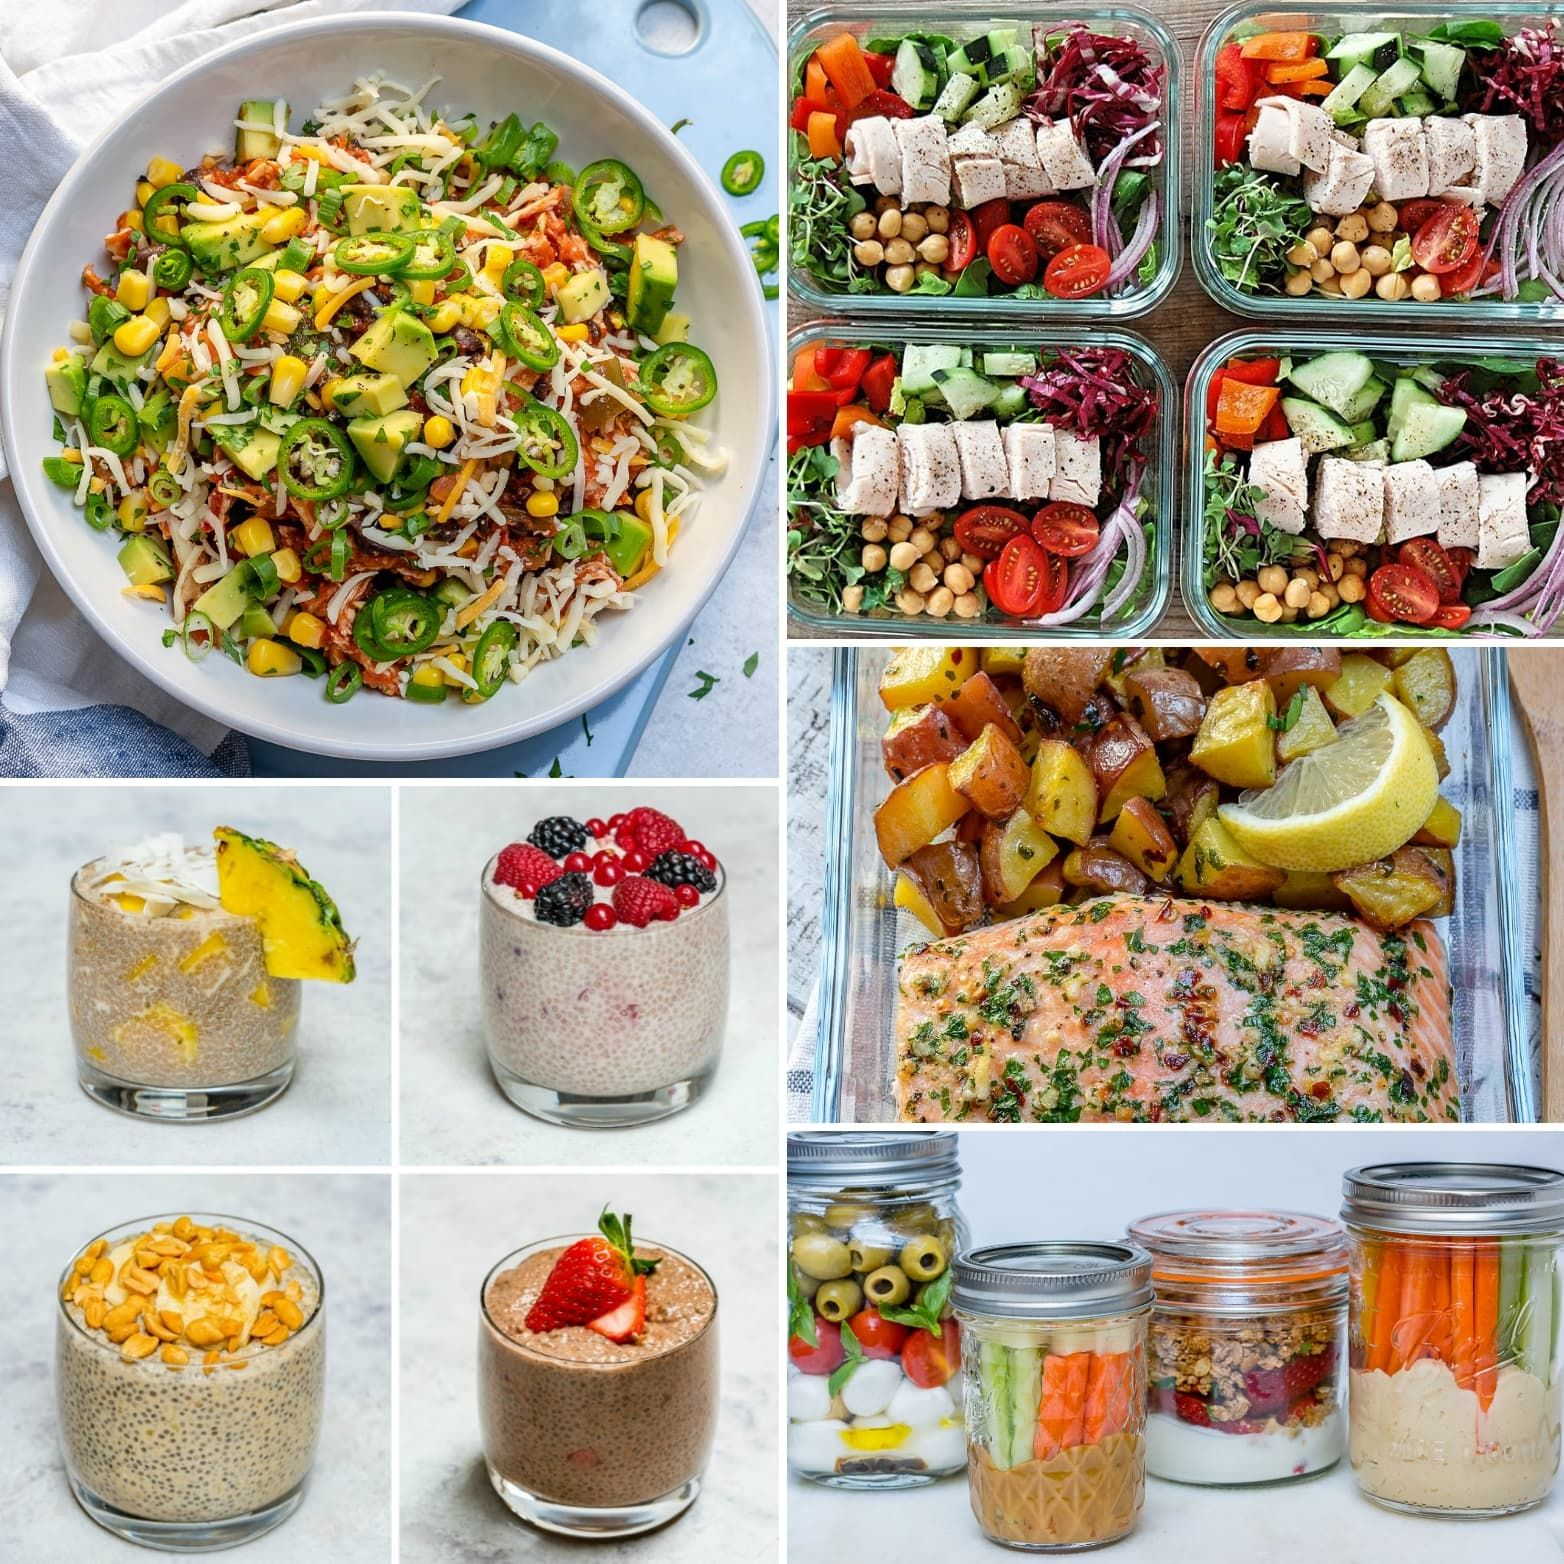 10 Top Clean Eating Meal Prep Recipes of 2018!